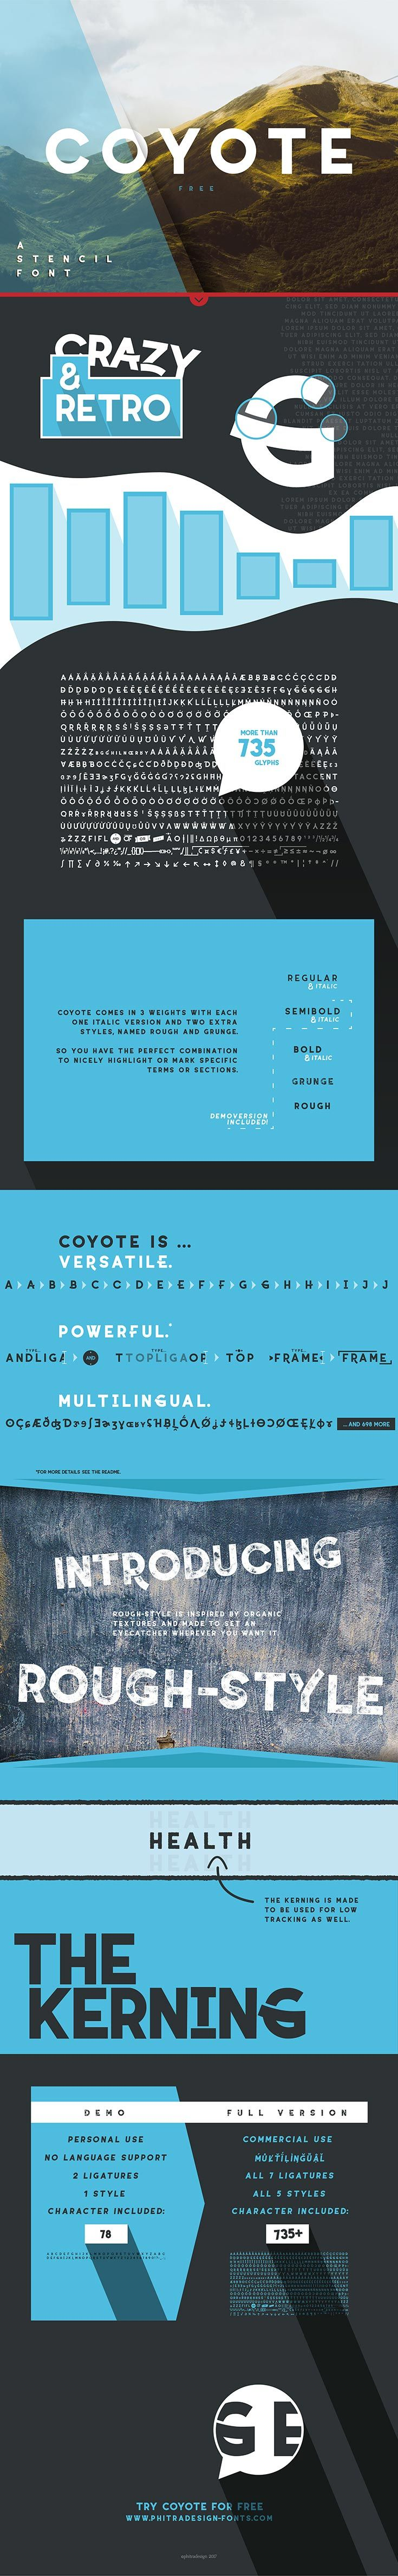 #Free Coyote #Sans #Serif Font is a fancy retro font with sharp edges to emphasize the calm character of the font. Or you go crazy with the alternative letters.